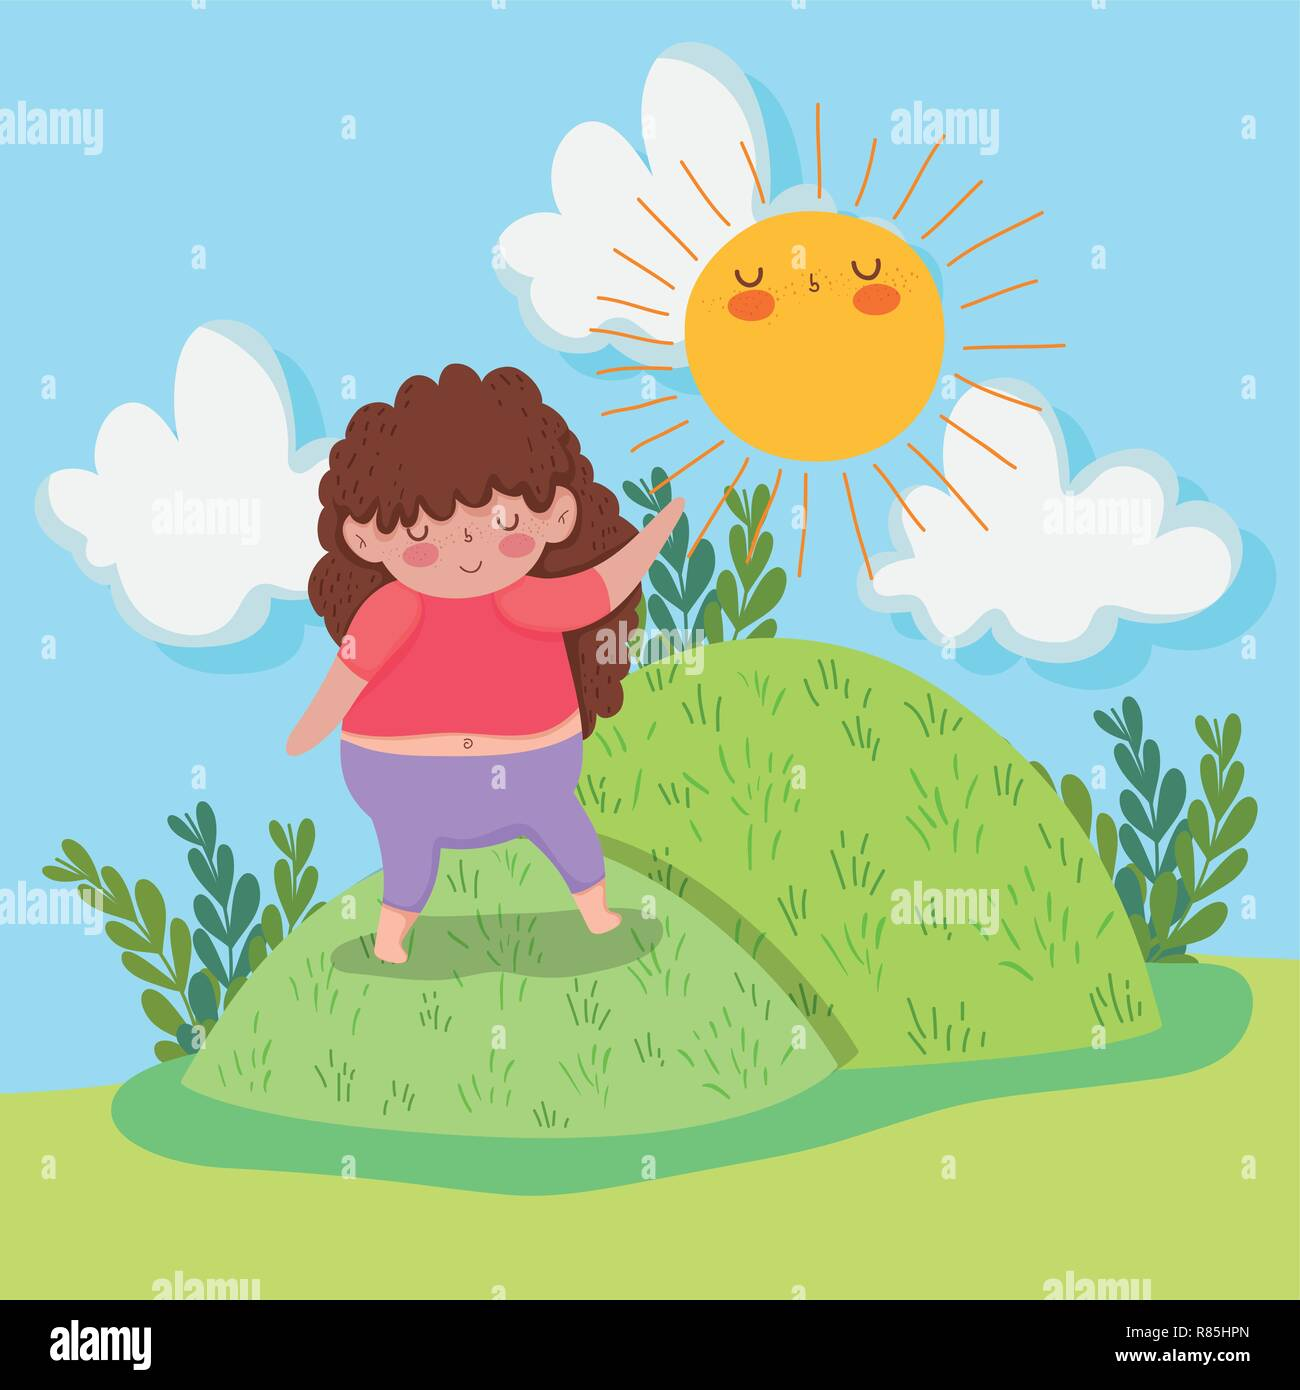 Cute Girl Game In The Mountains With Sun And Plants Stock Vector